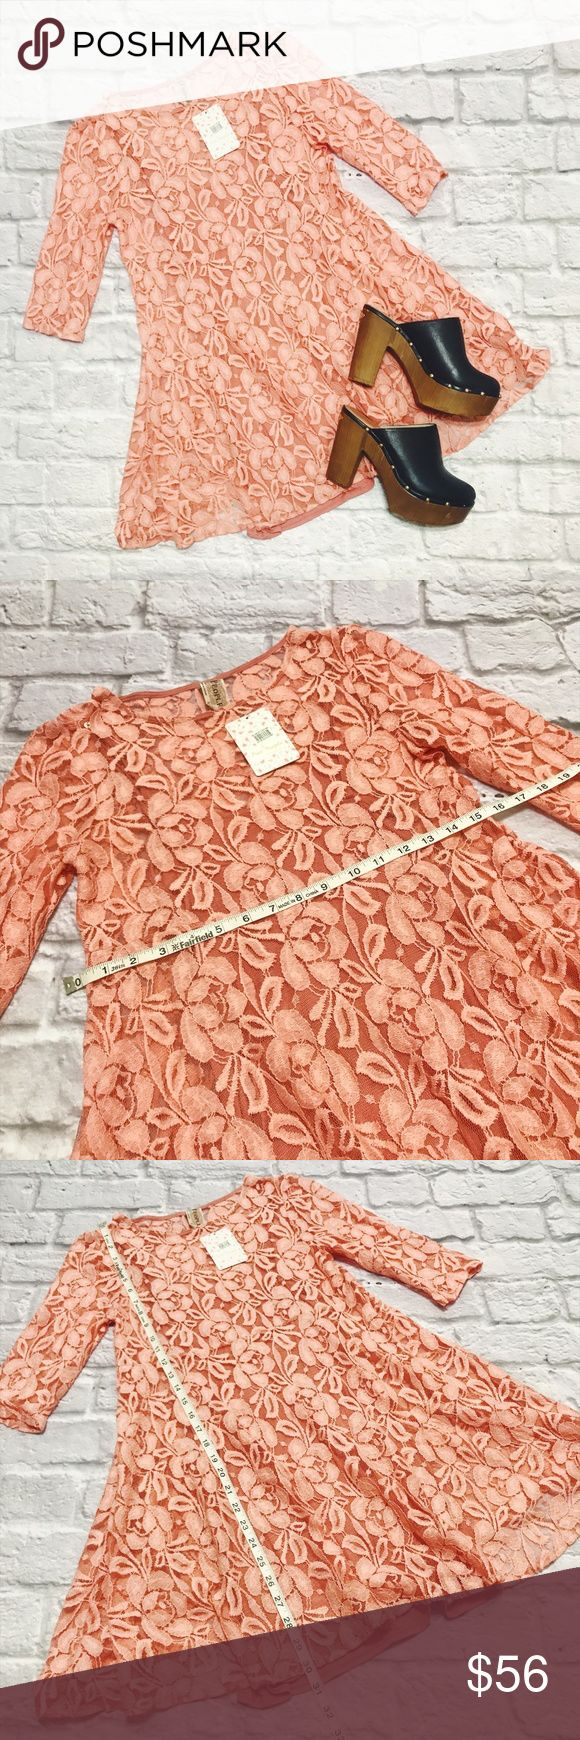 NWT Free People Crochet Mini Dress In Apricot NWT Free People Crochet Mini Dress In Apricot condition: NWT (new with tags) color: apricot (orangish peach/pink color, mostly orange looking!) fit: true to size other: Has slip inside Free People Dresses Mini